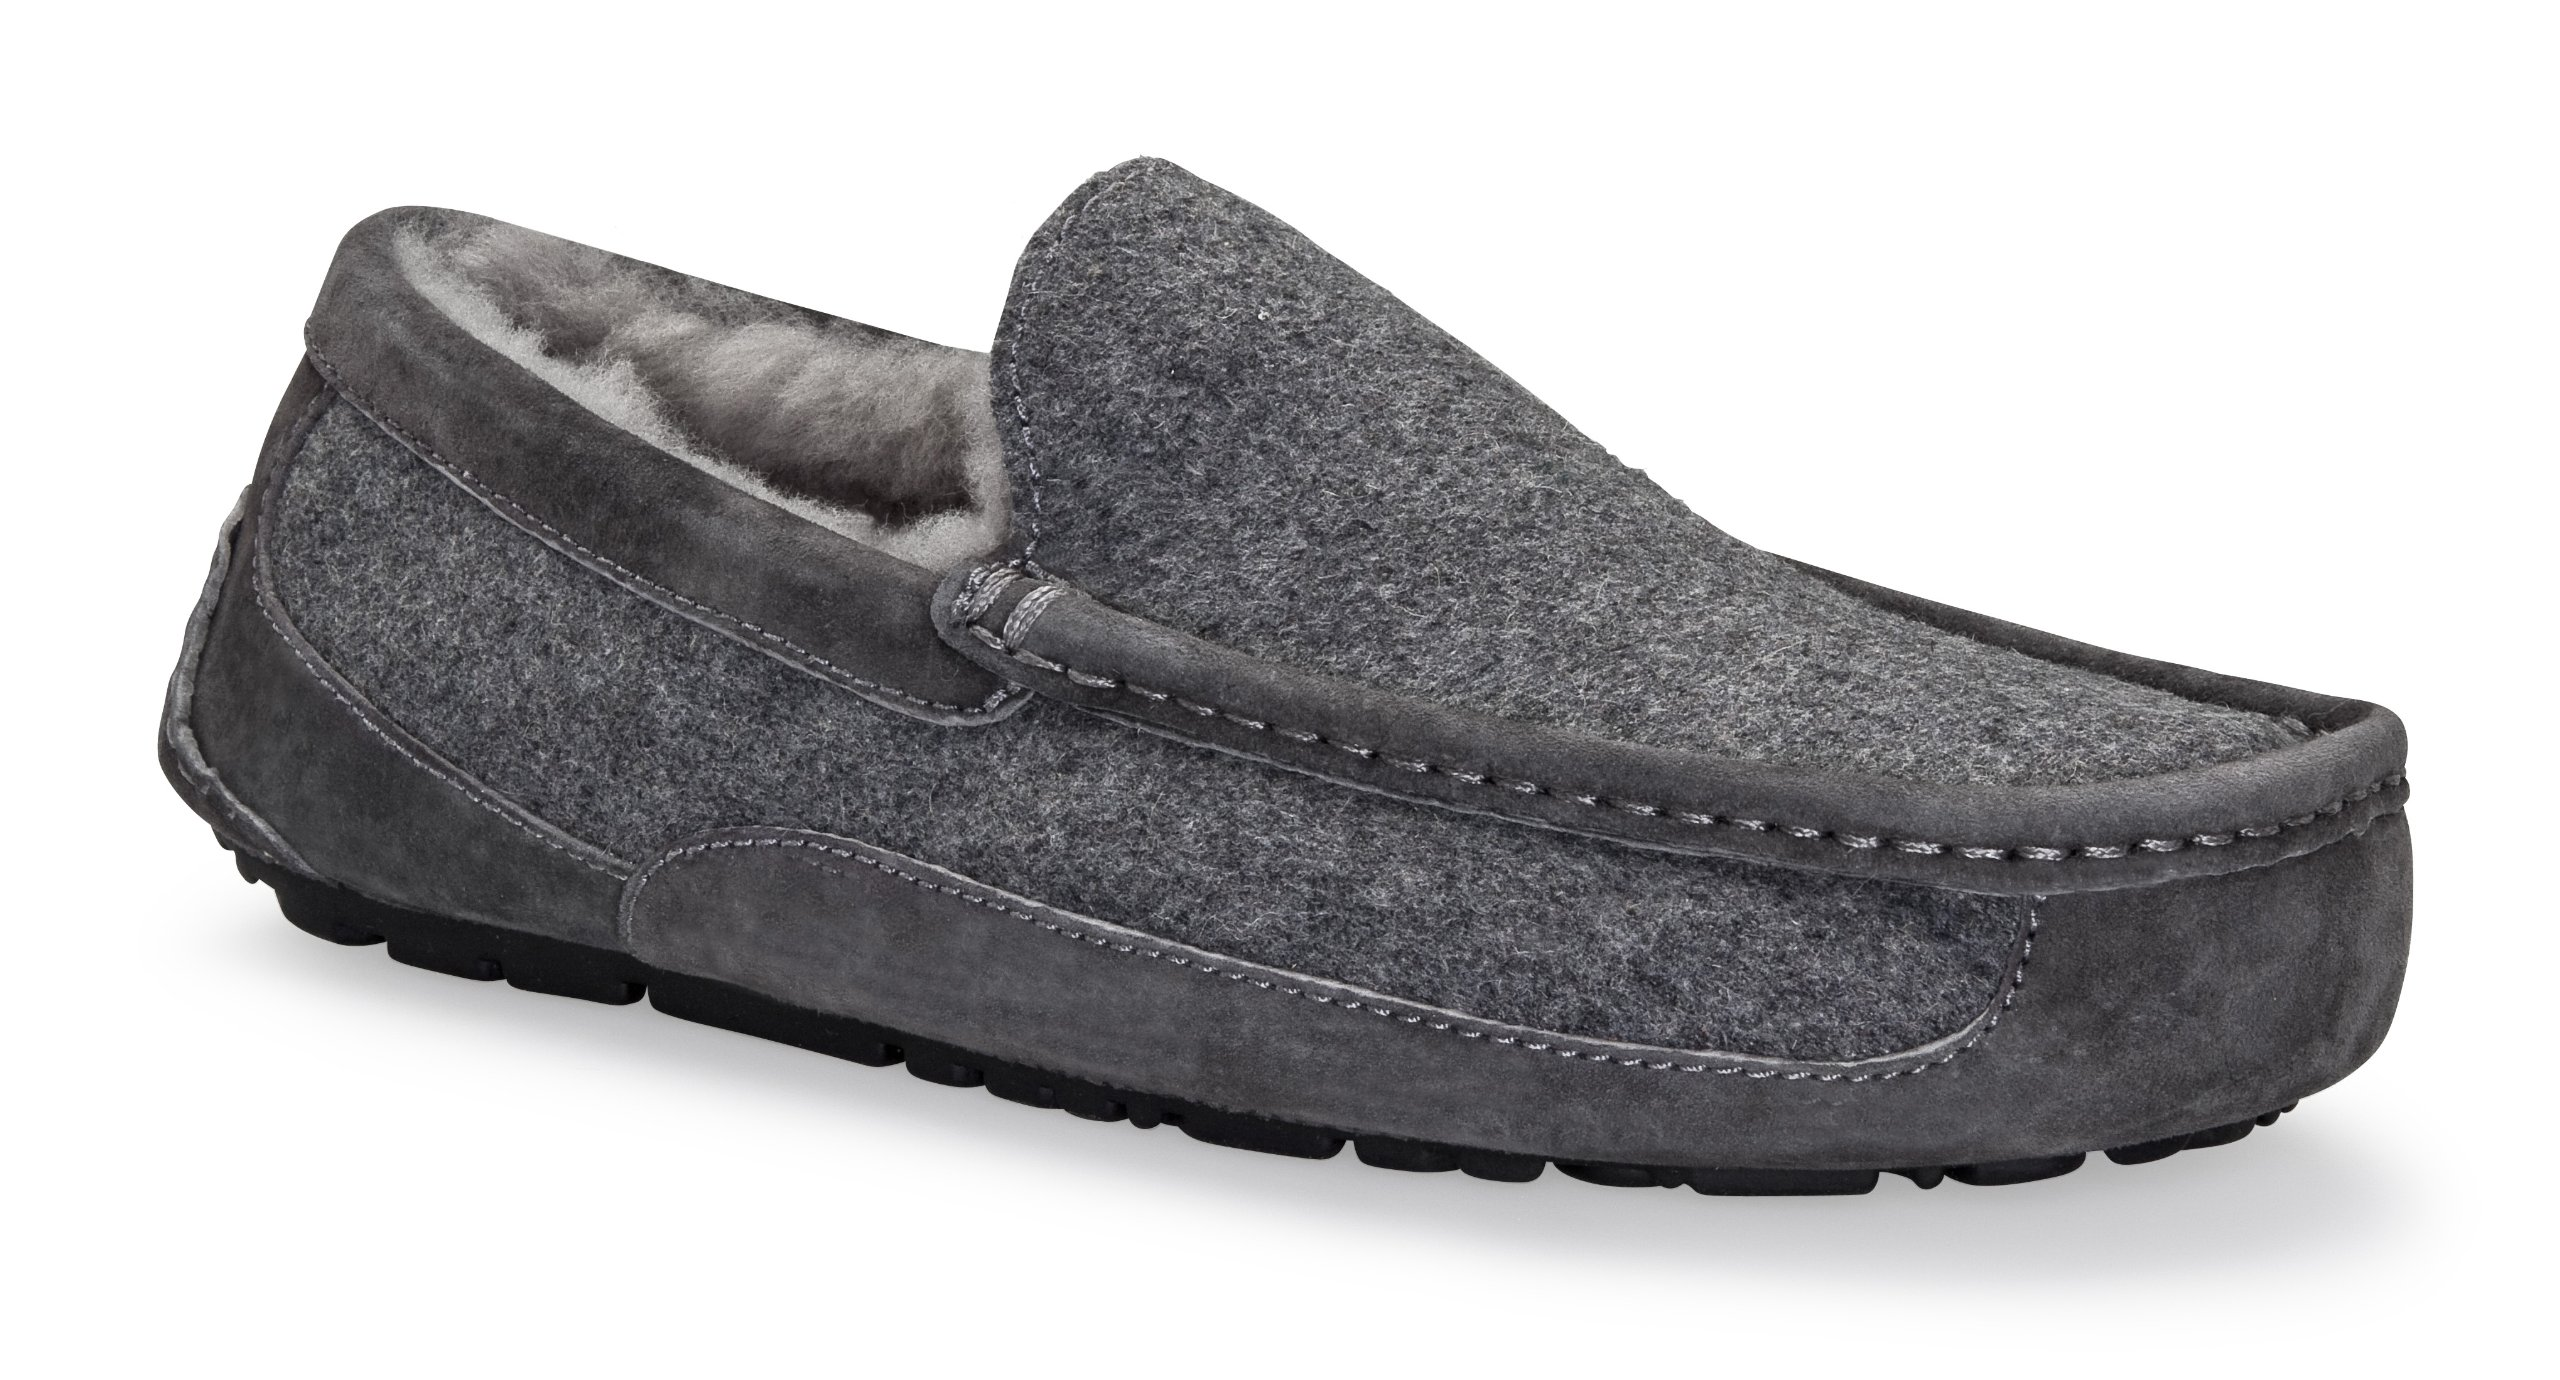 UGG Men's Ascot Wool Slipper